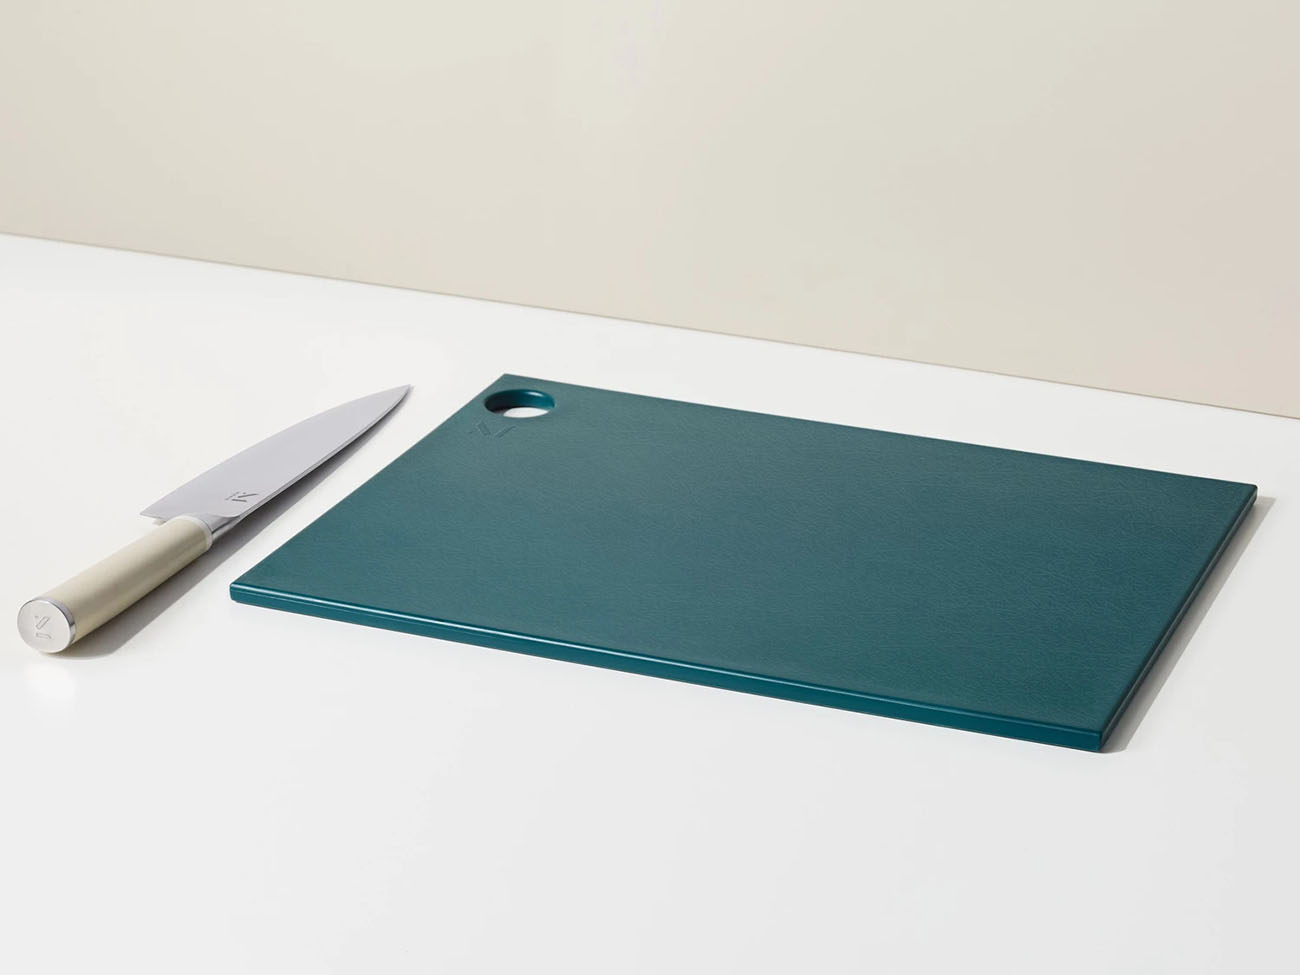 reBoard from Material made from recycled plastic